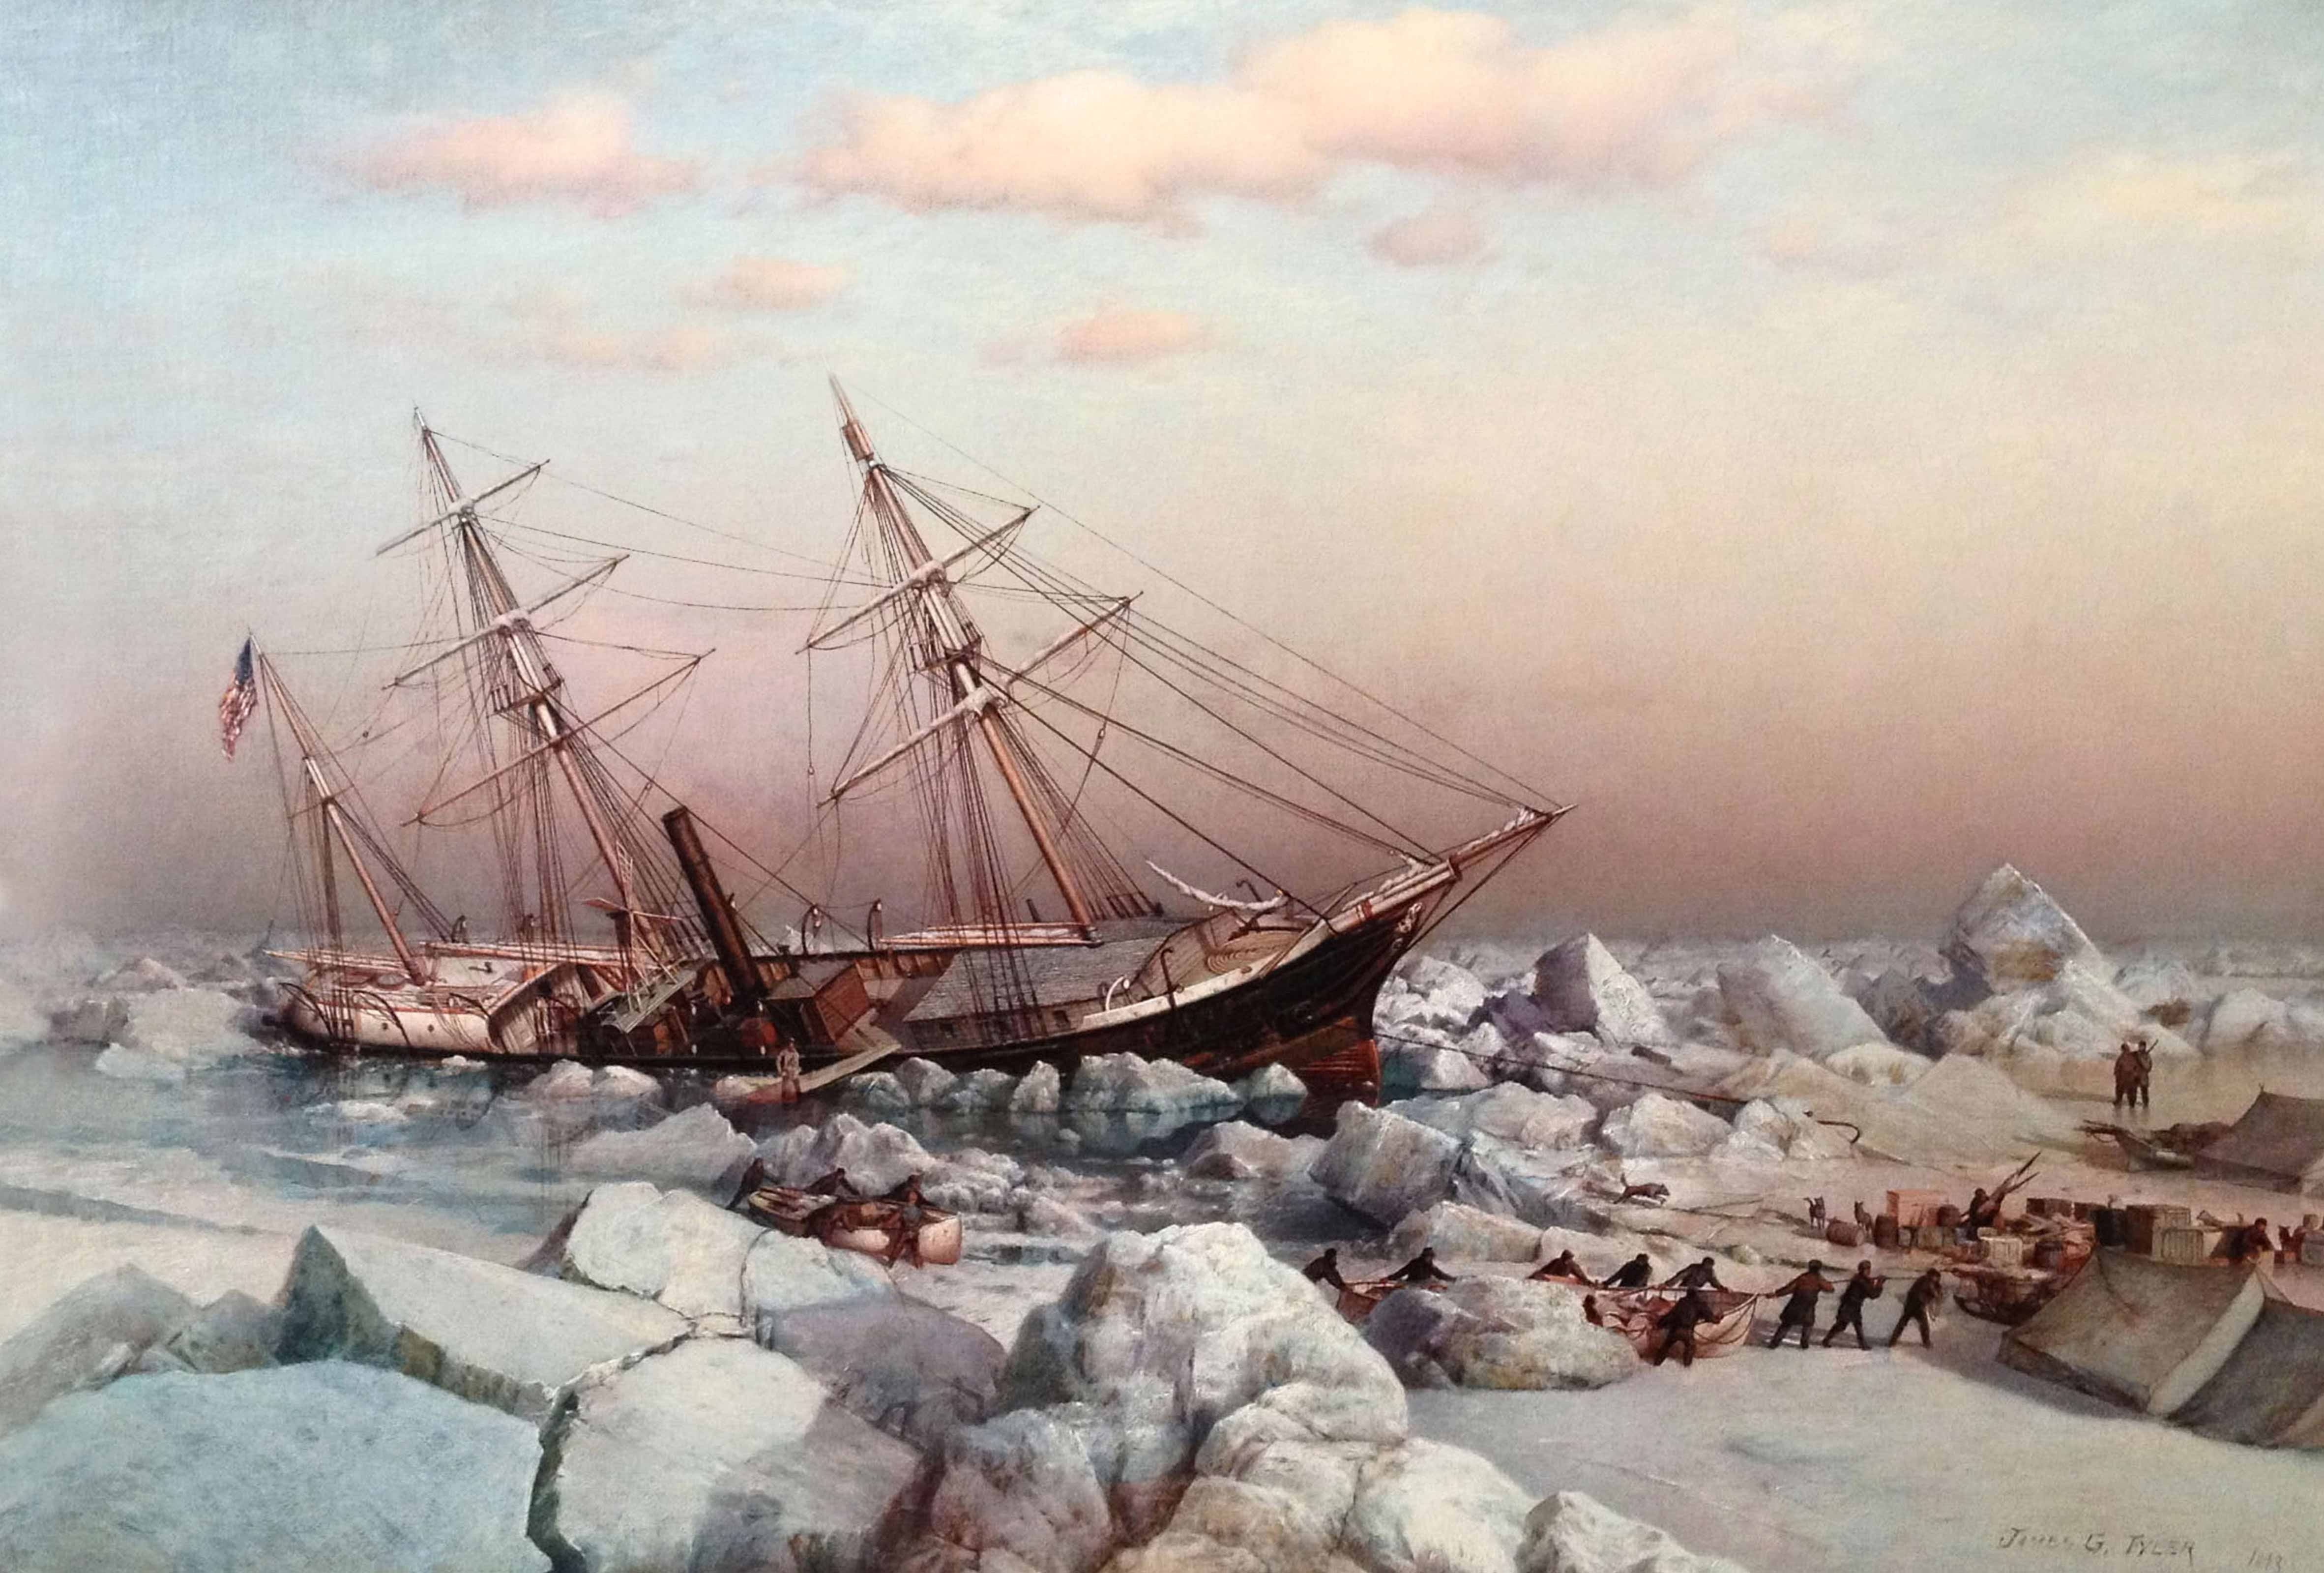 The Jeannette trapped in ice                     An 1883 painting based on drawings in De Long's diary